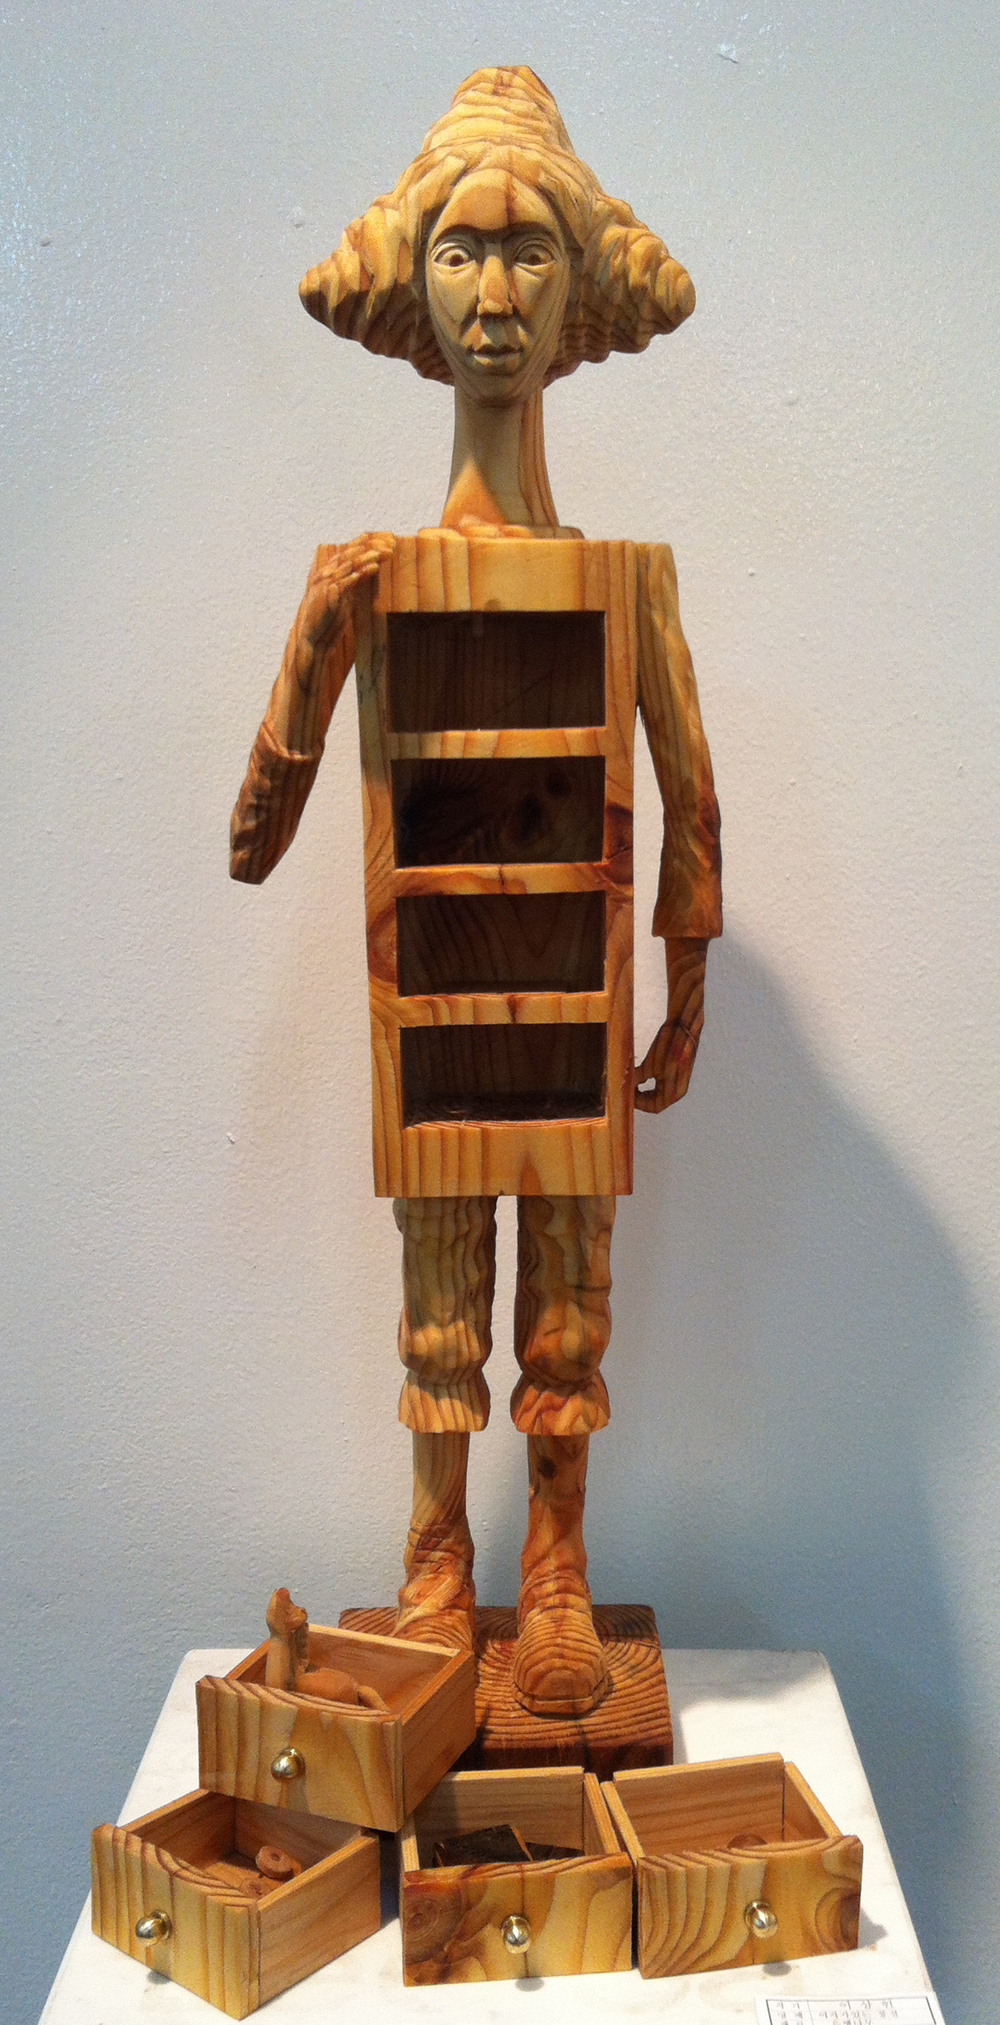 "Memories in Childhood.W9.8""L9.8""H19.7"".Wood.2012"